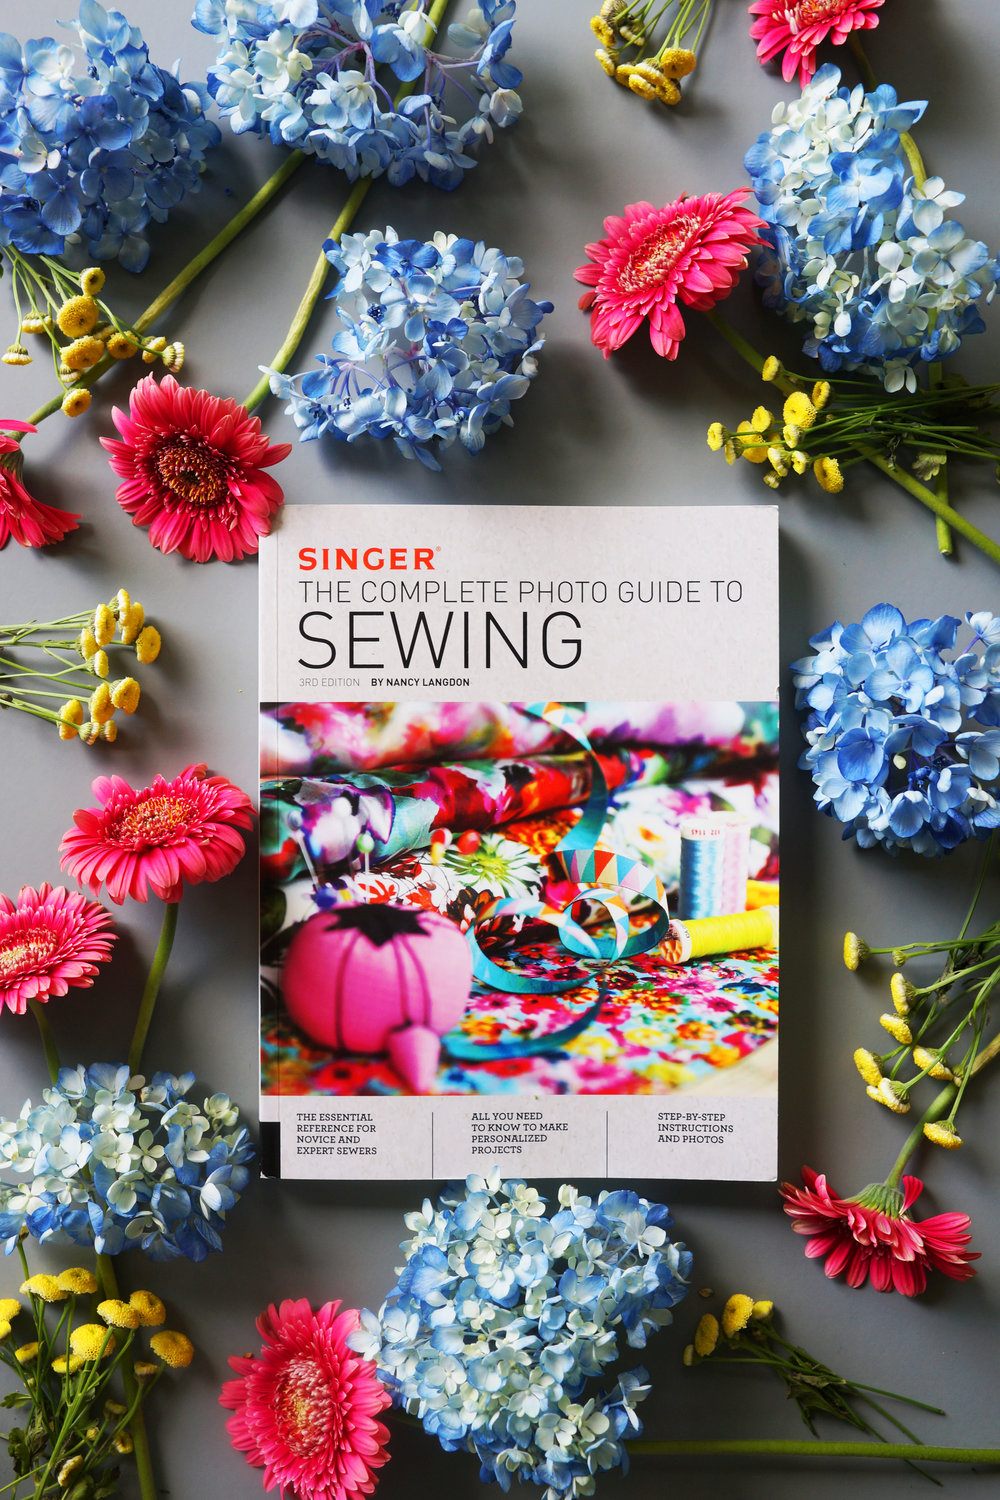 Check out this fully revised photo guide to sewing!  The Singer Complete Photo Guide to Sewing.  Yes, that was me that did all the revising. And check out the many new projects inside!